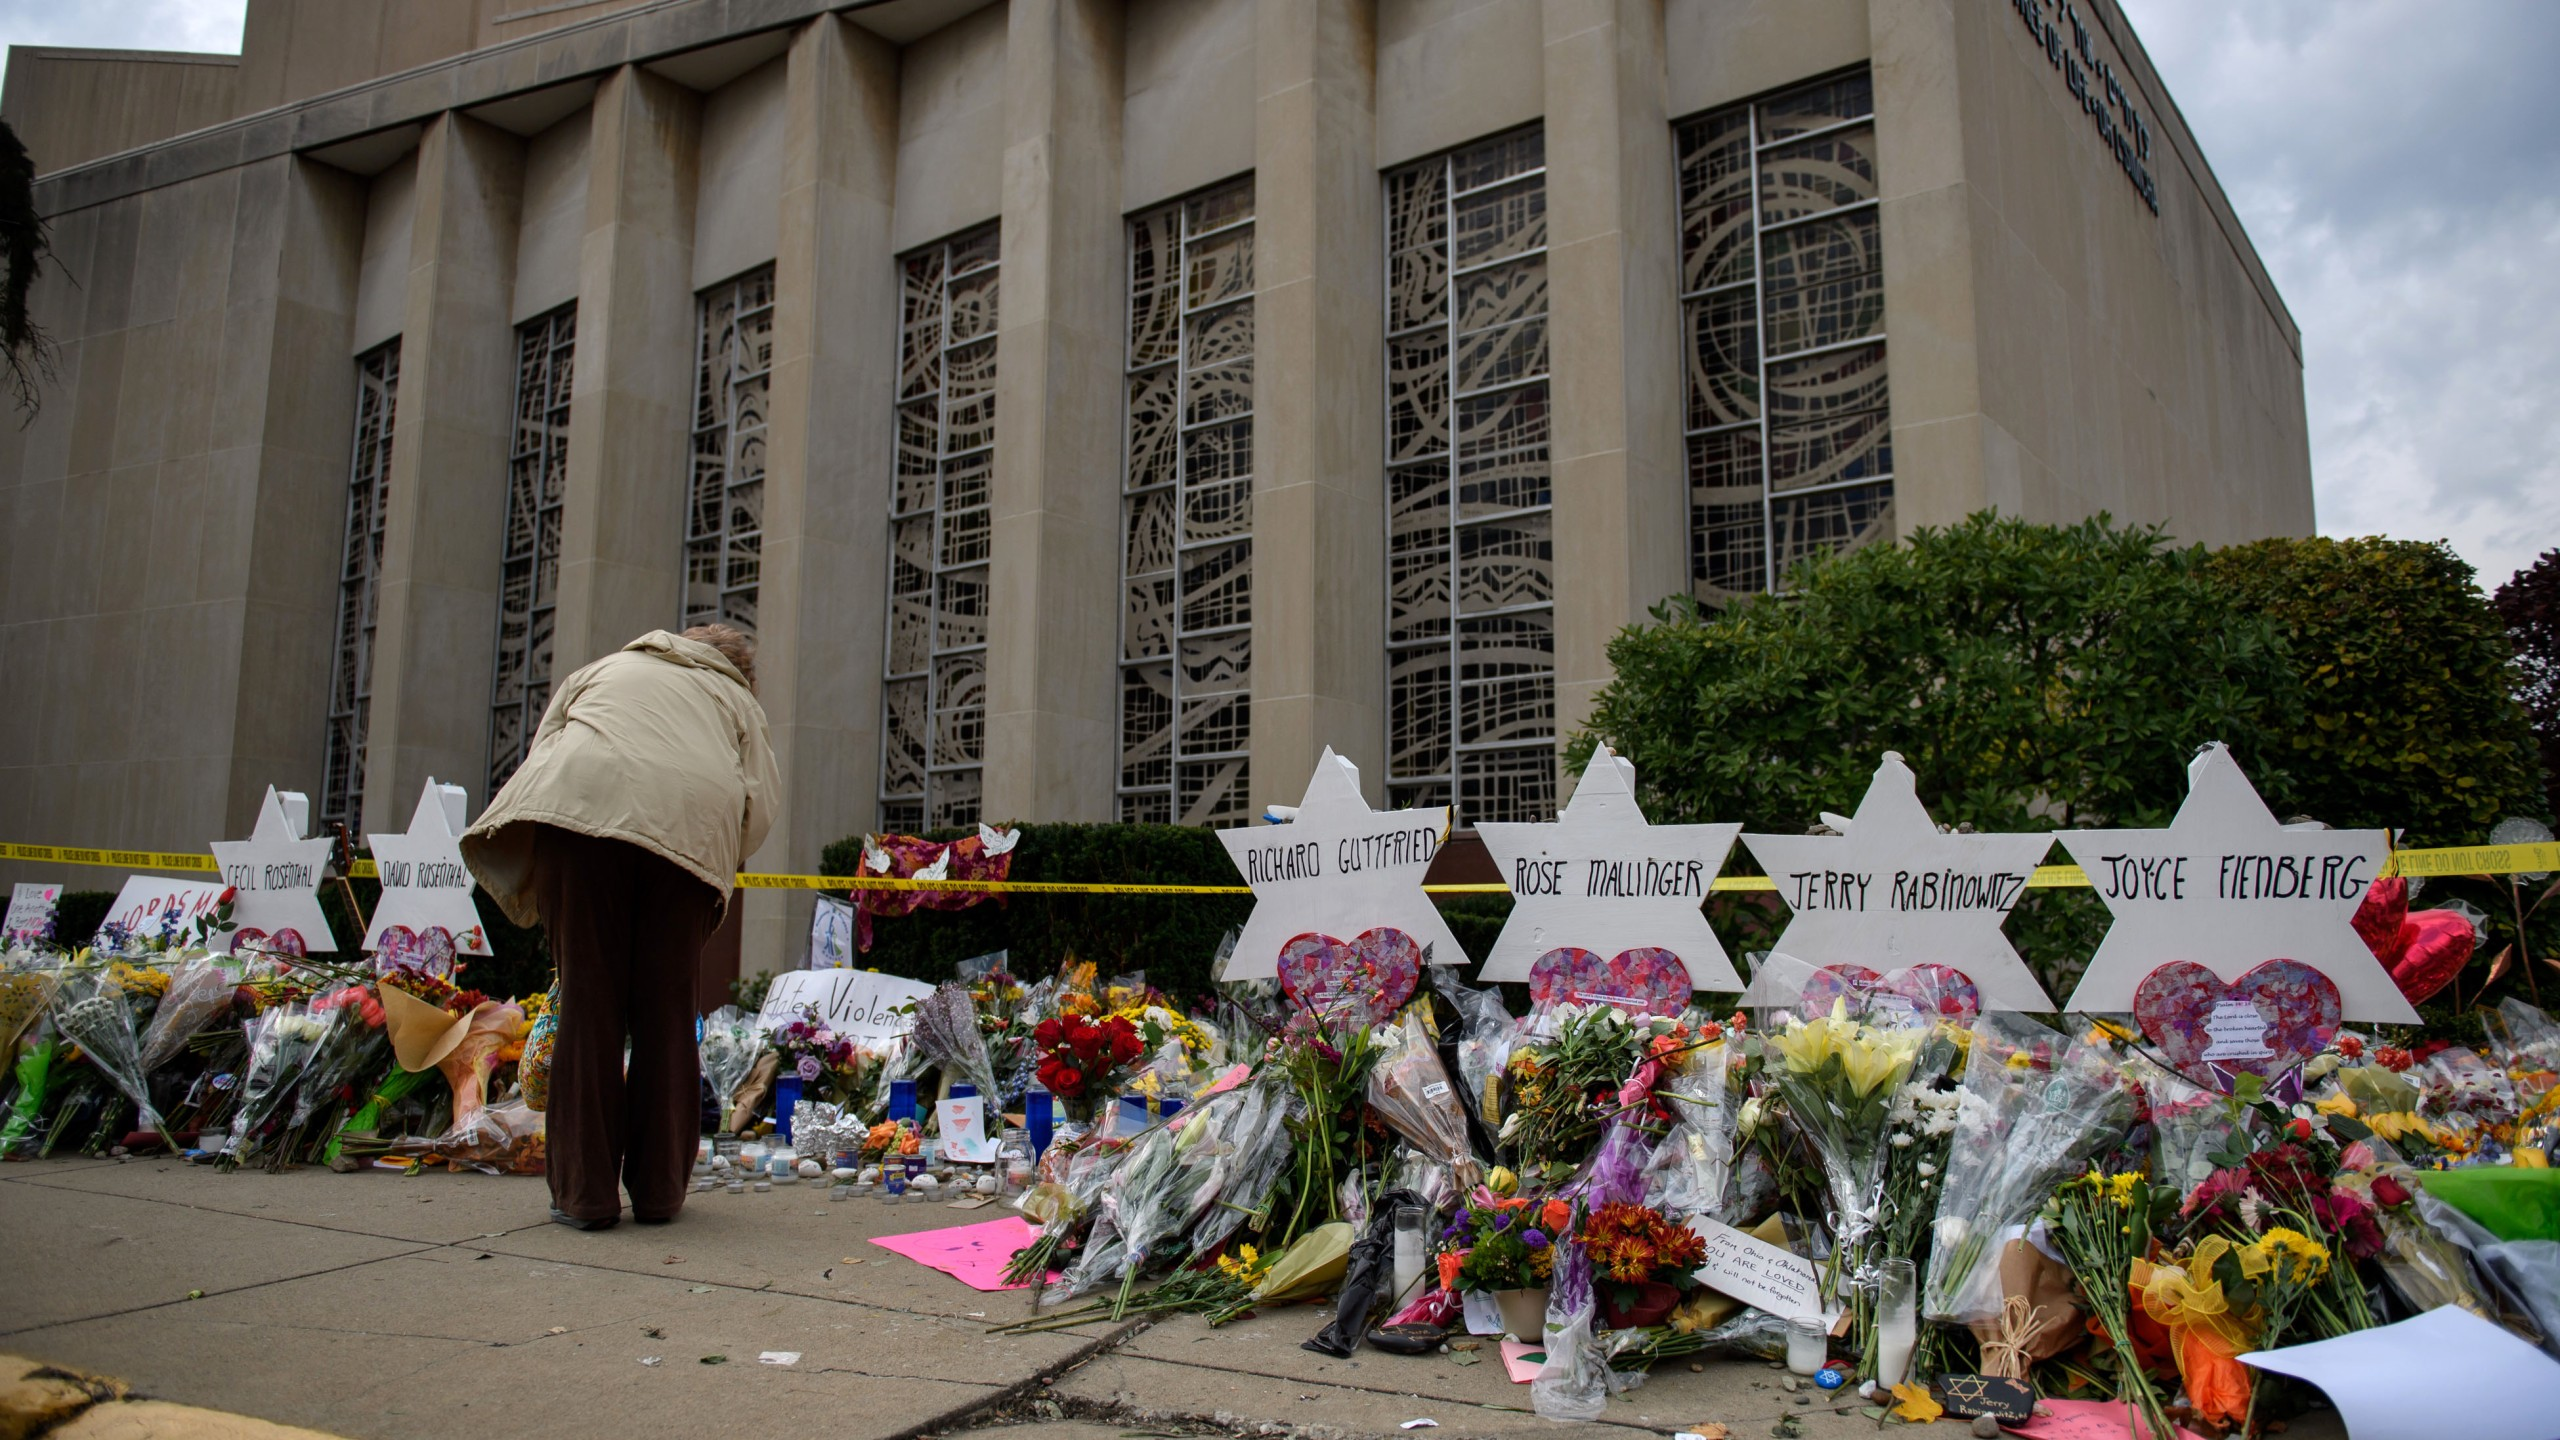 Mourners visit the memorial outside the Tree of Life Synagogue in Pittsburgh on Oct. 31, 2018. (Credit: Jeff Swensen/Getty Images)